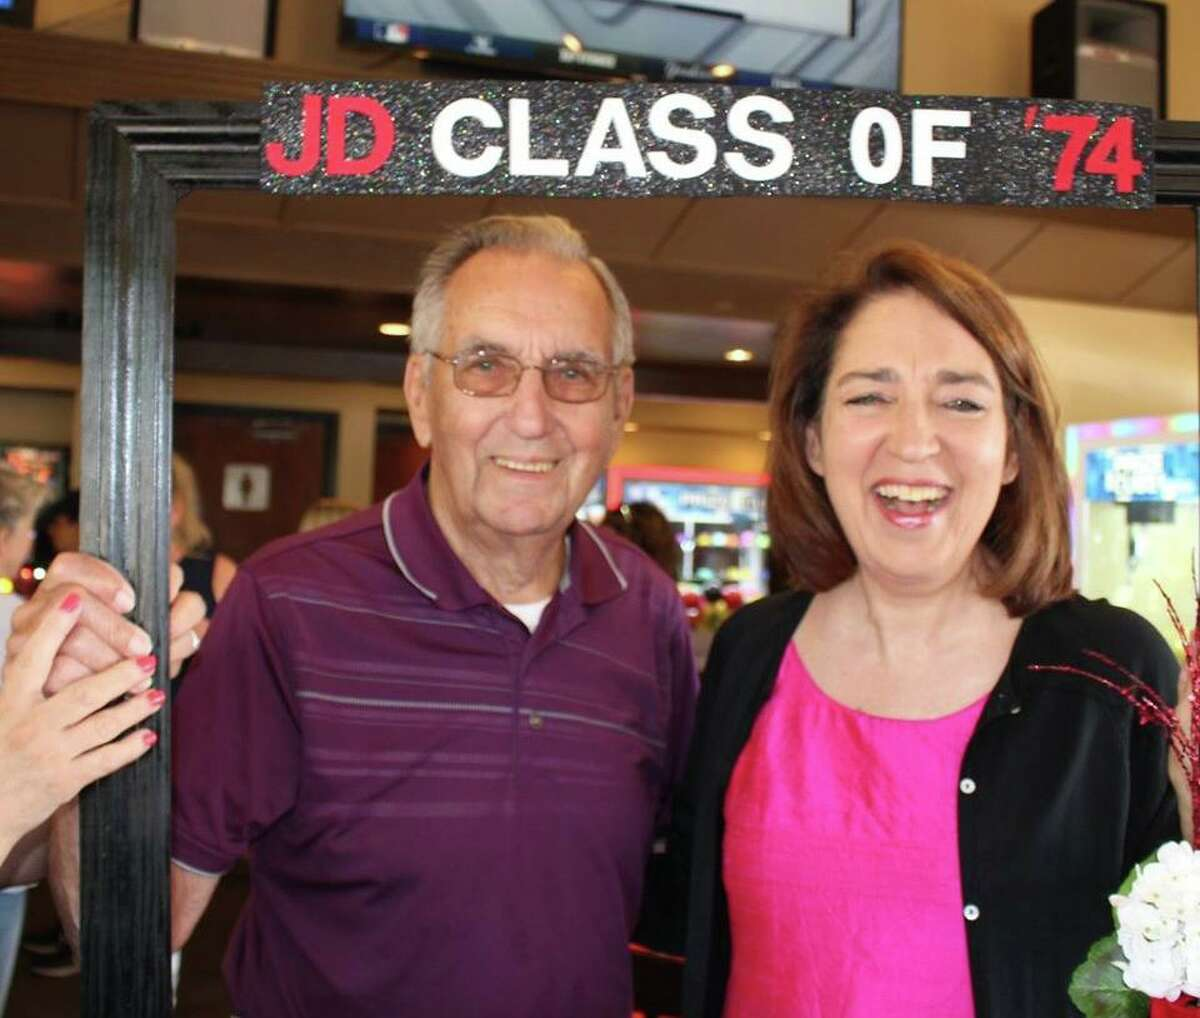 Carl and Janeen Bjork, his daughter, an Old Greenwich resident, at a high school reunion at the Trappers Grille in East Syracuse, N.Y.